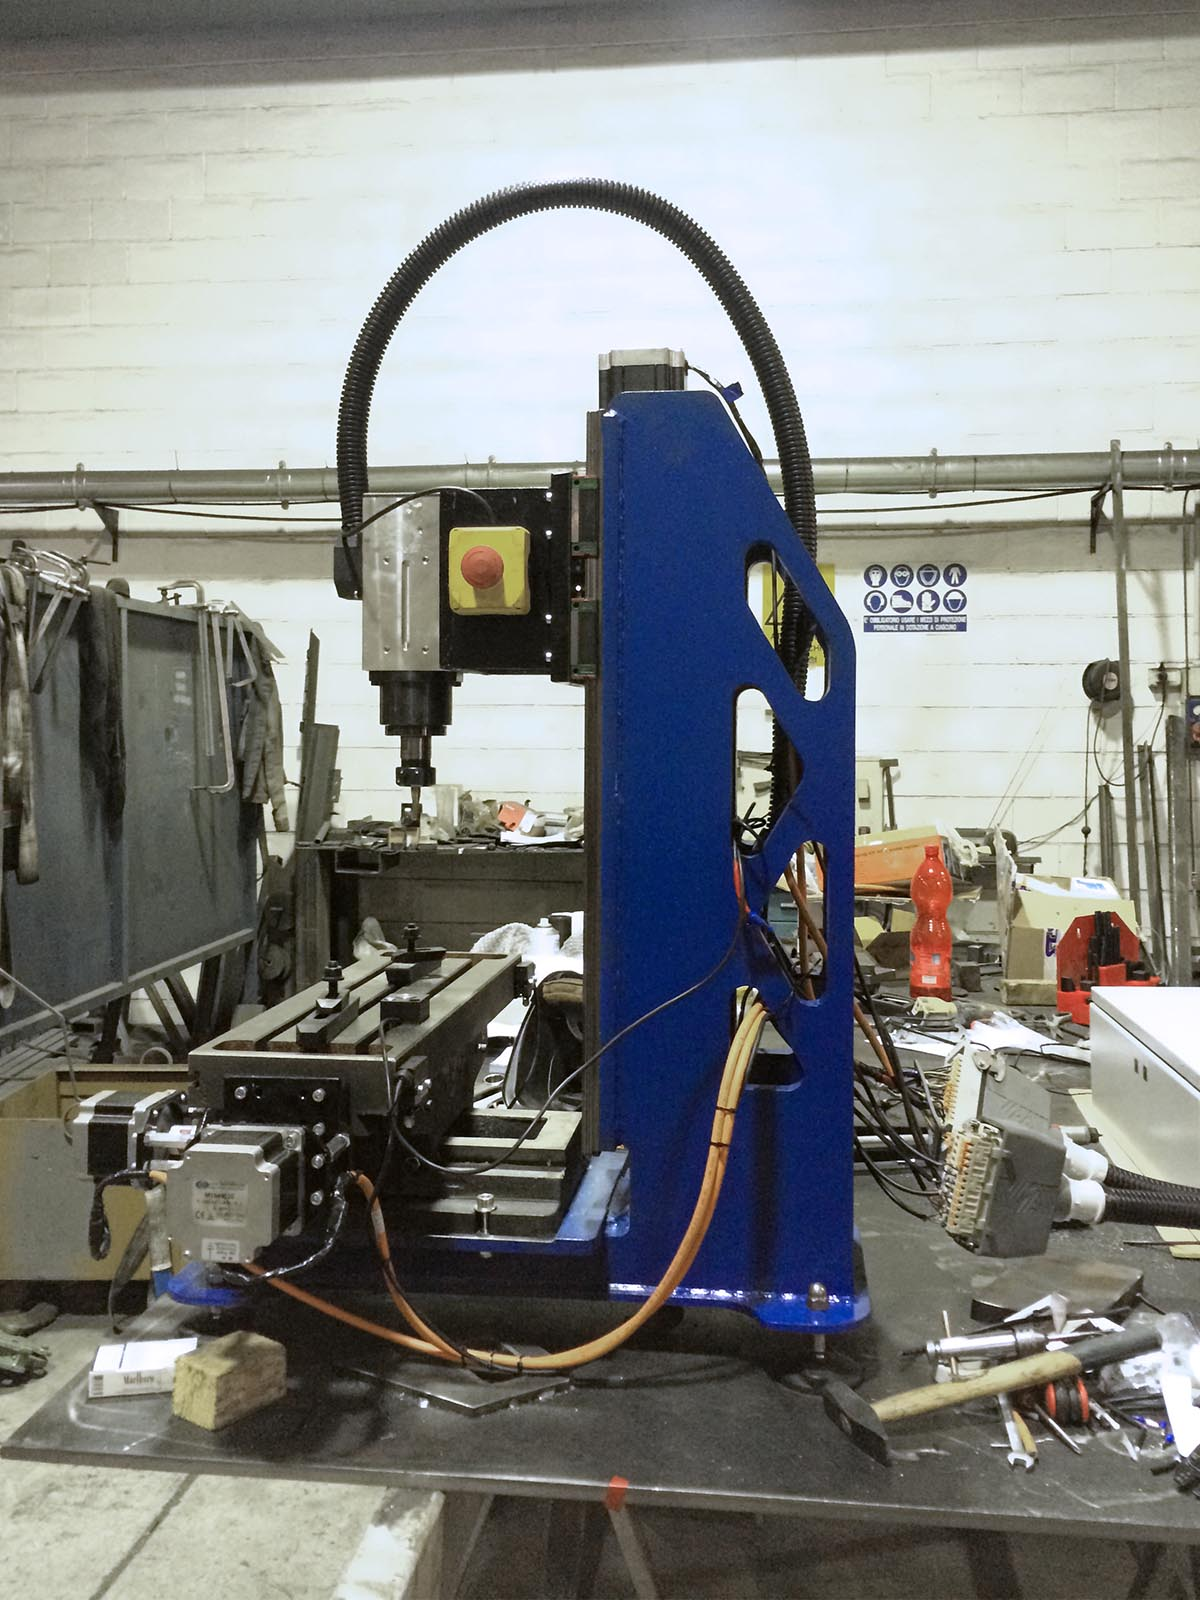 DIY CNC BUILD — ANDREA LOCATELLI